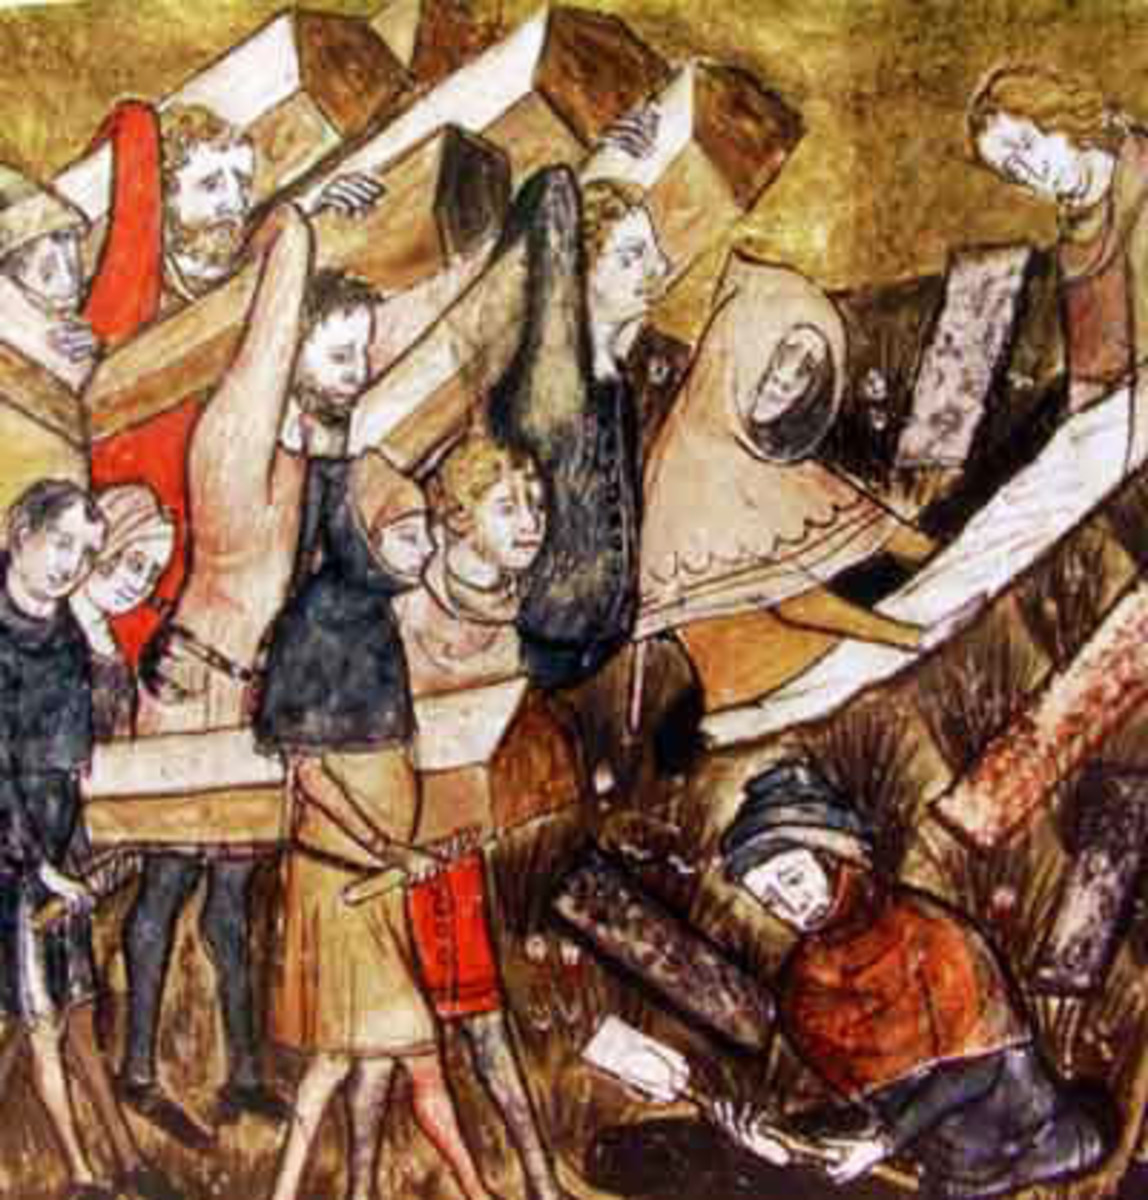 Citizens of Tournai bury plague victims in the 14th century